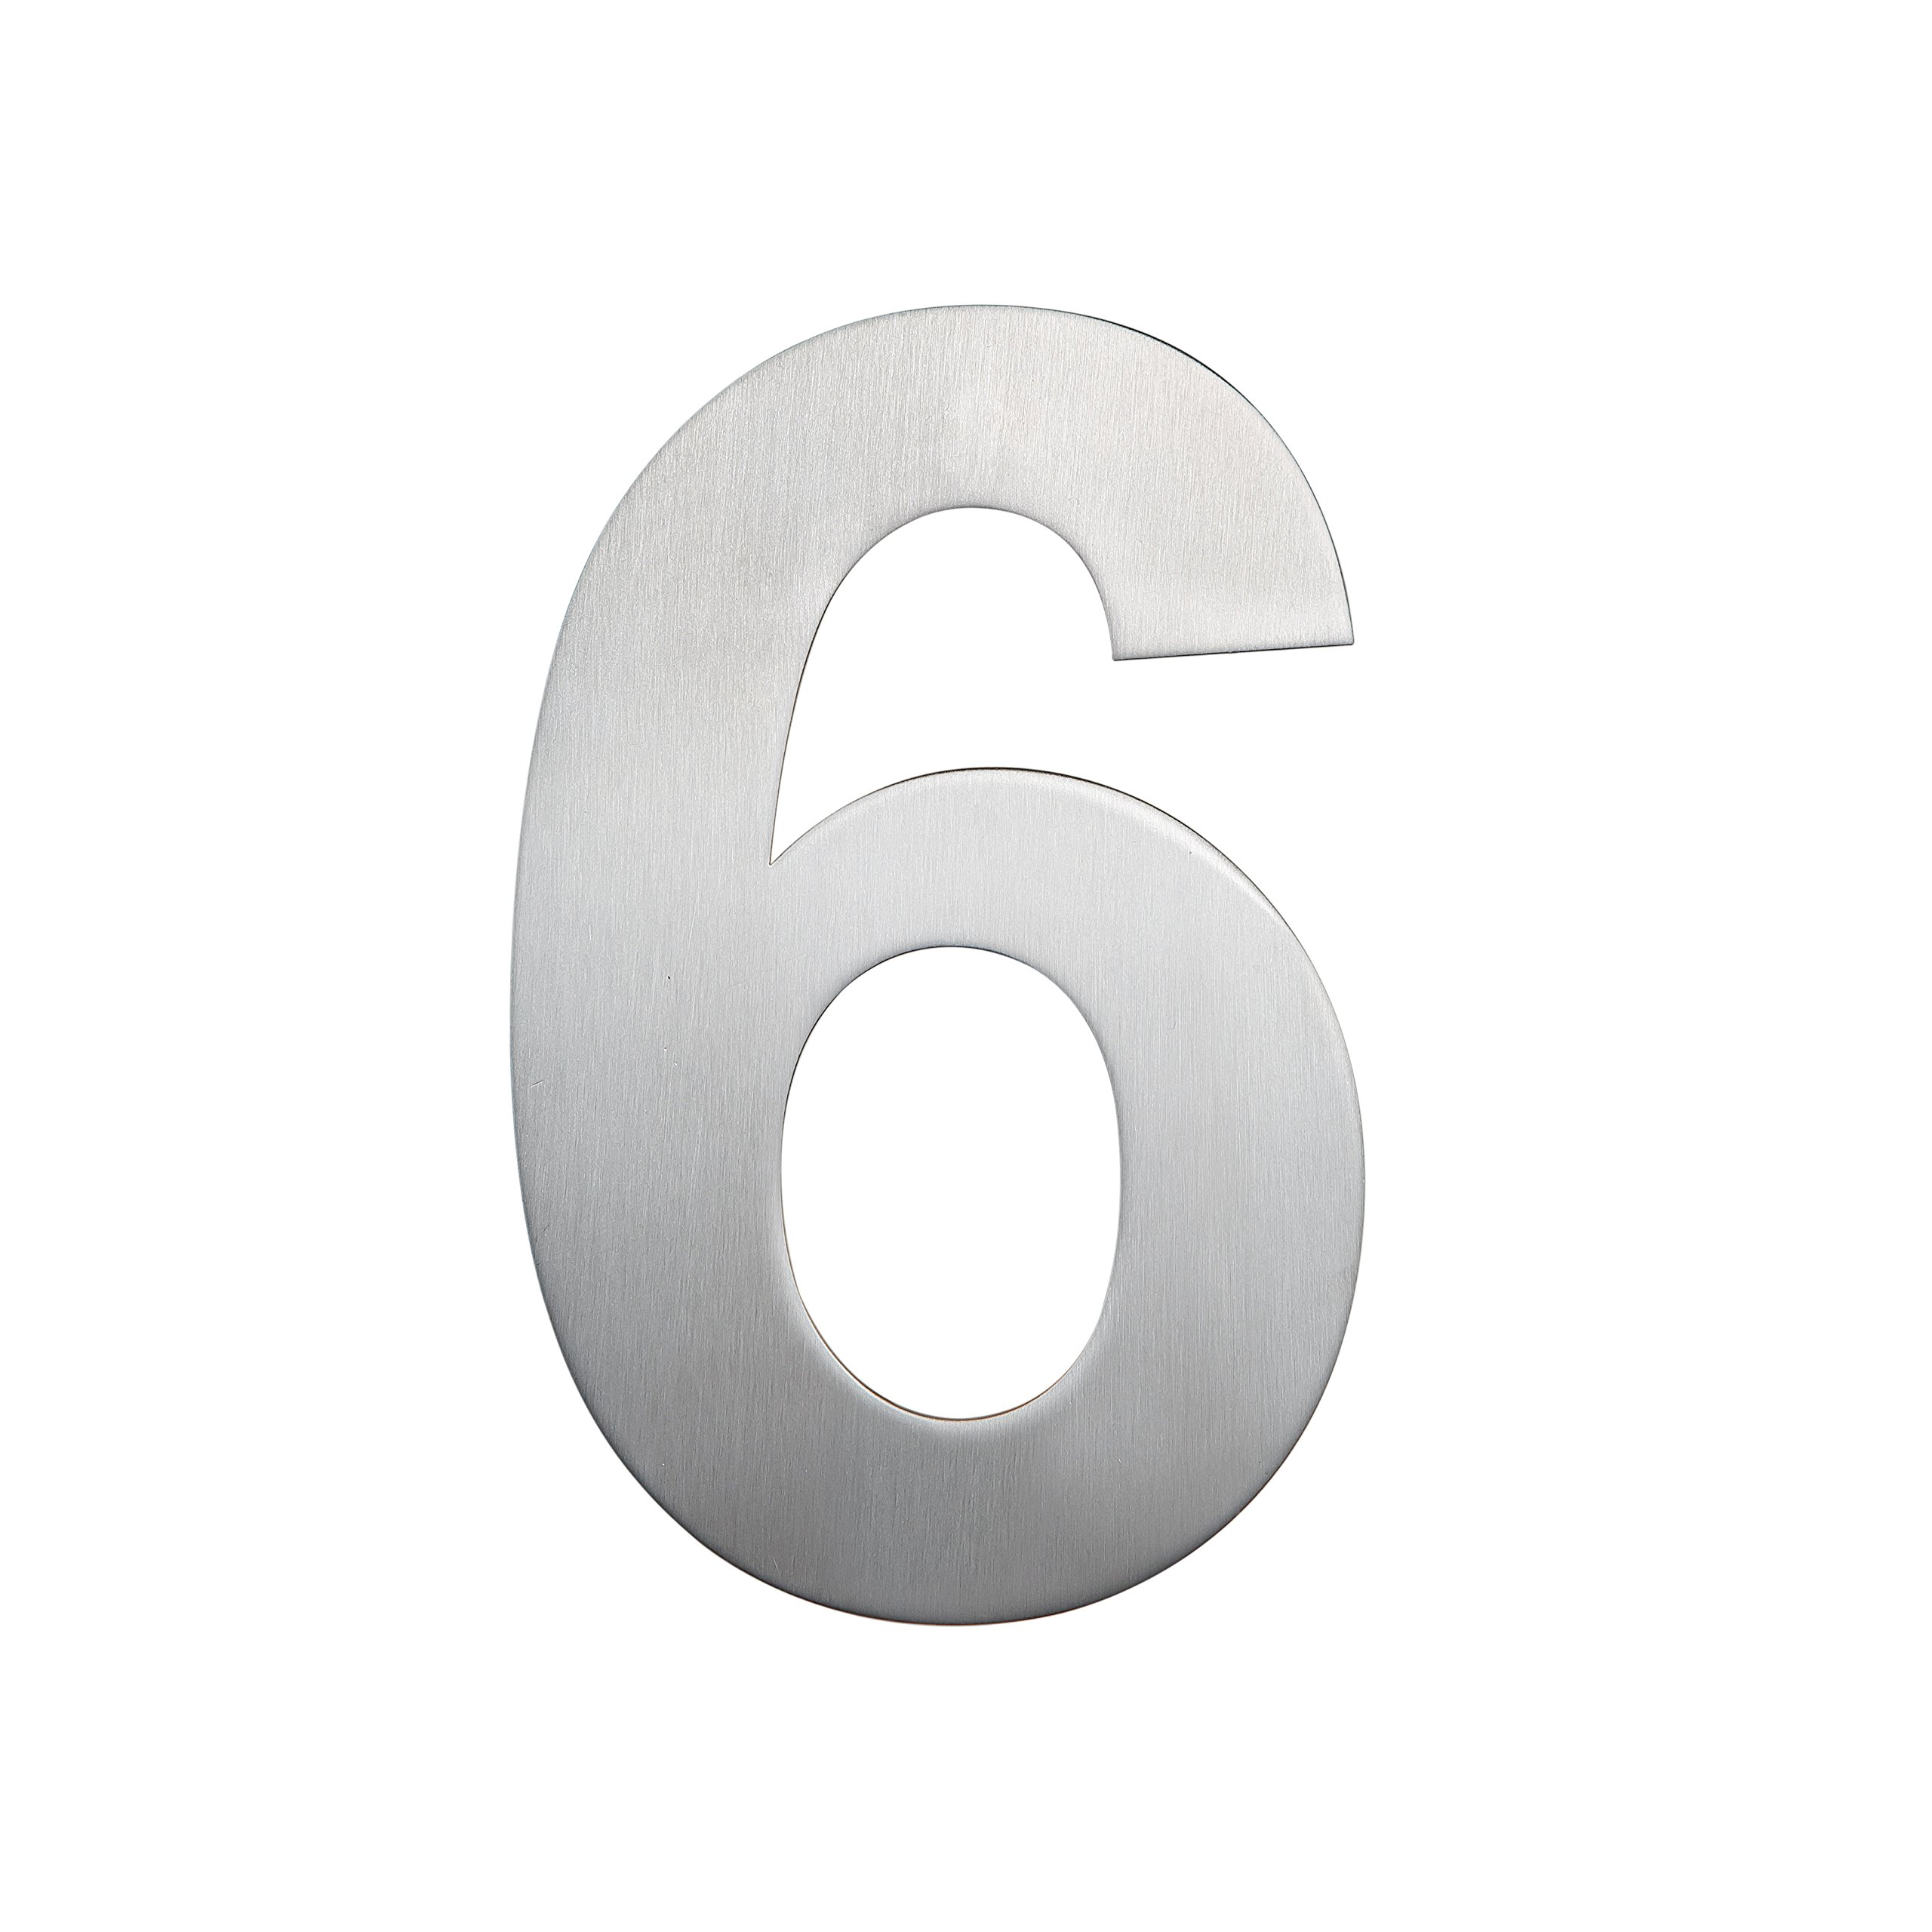 QT Modern House Number - SMALL 4 Inch - Brushed Stainless Steel (Number 6 Six / 9 Nine), Floating Appearance, Easy to install and made of solid 304